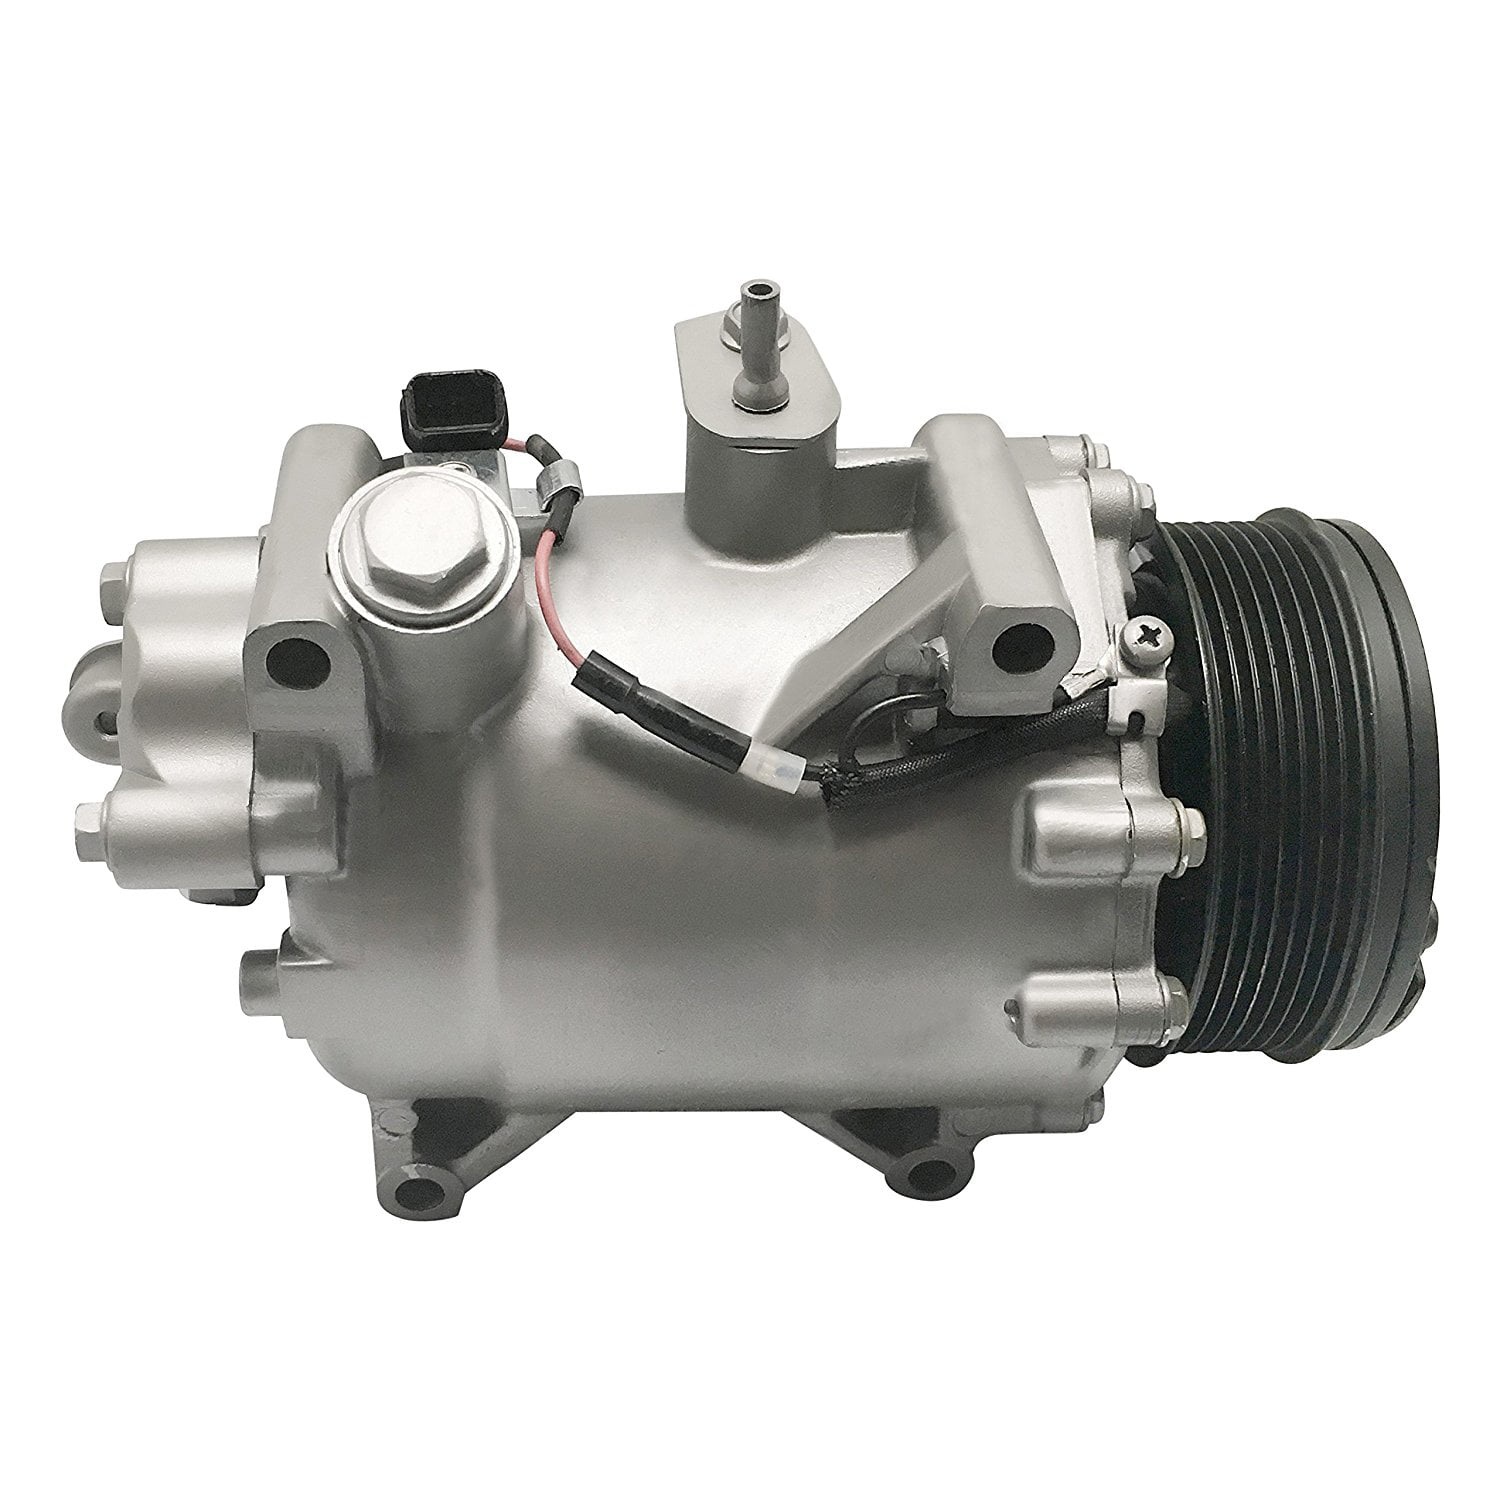 RYC Remanufactured AC Compressor And A/C Clutch EG889 Fits